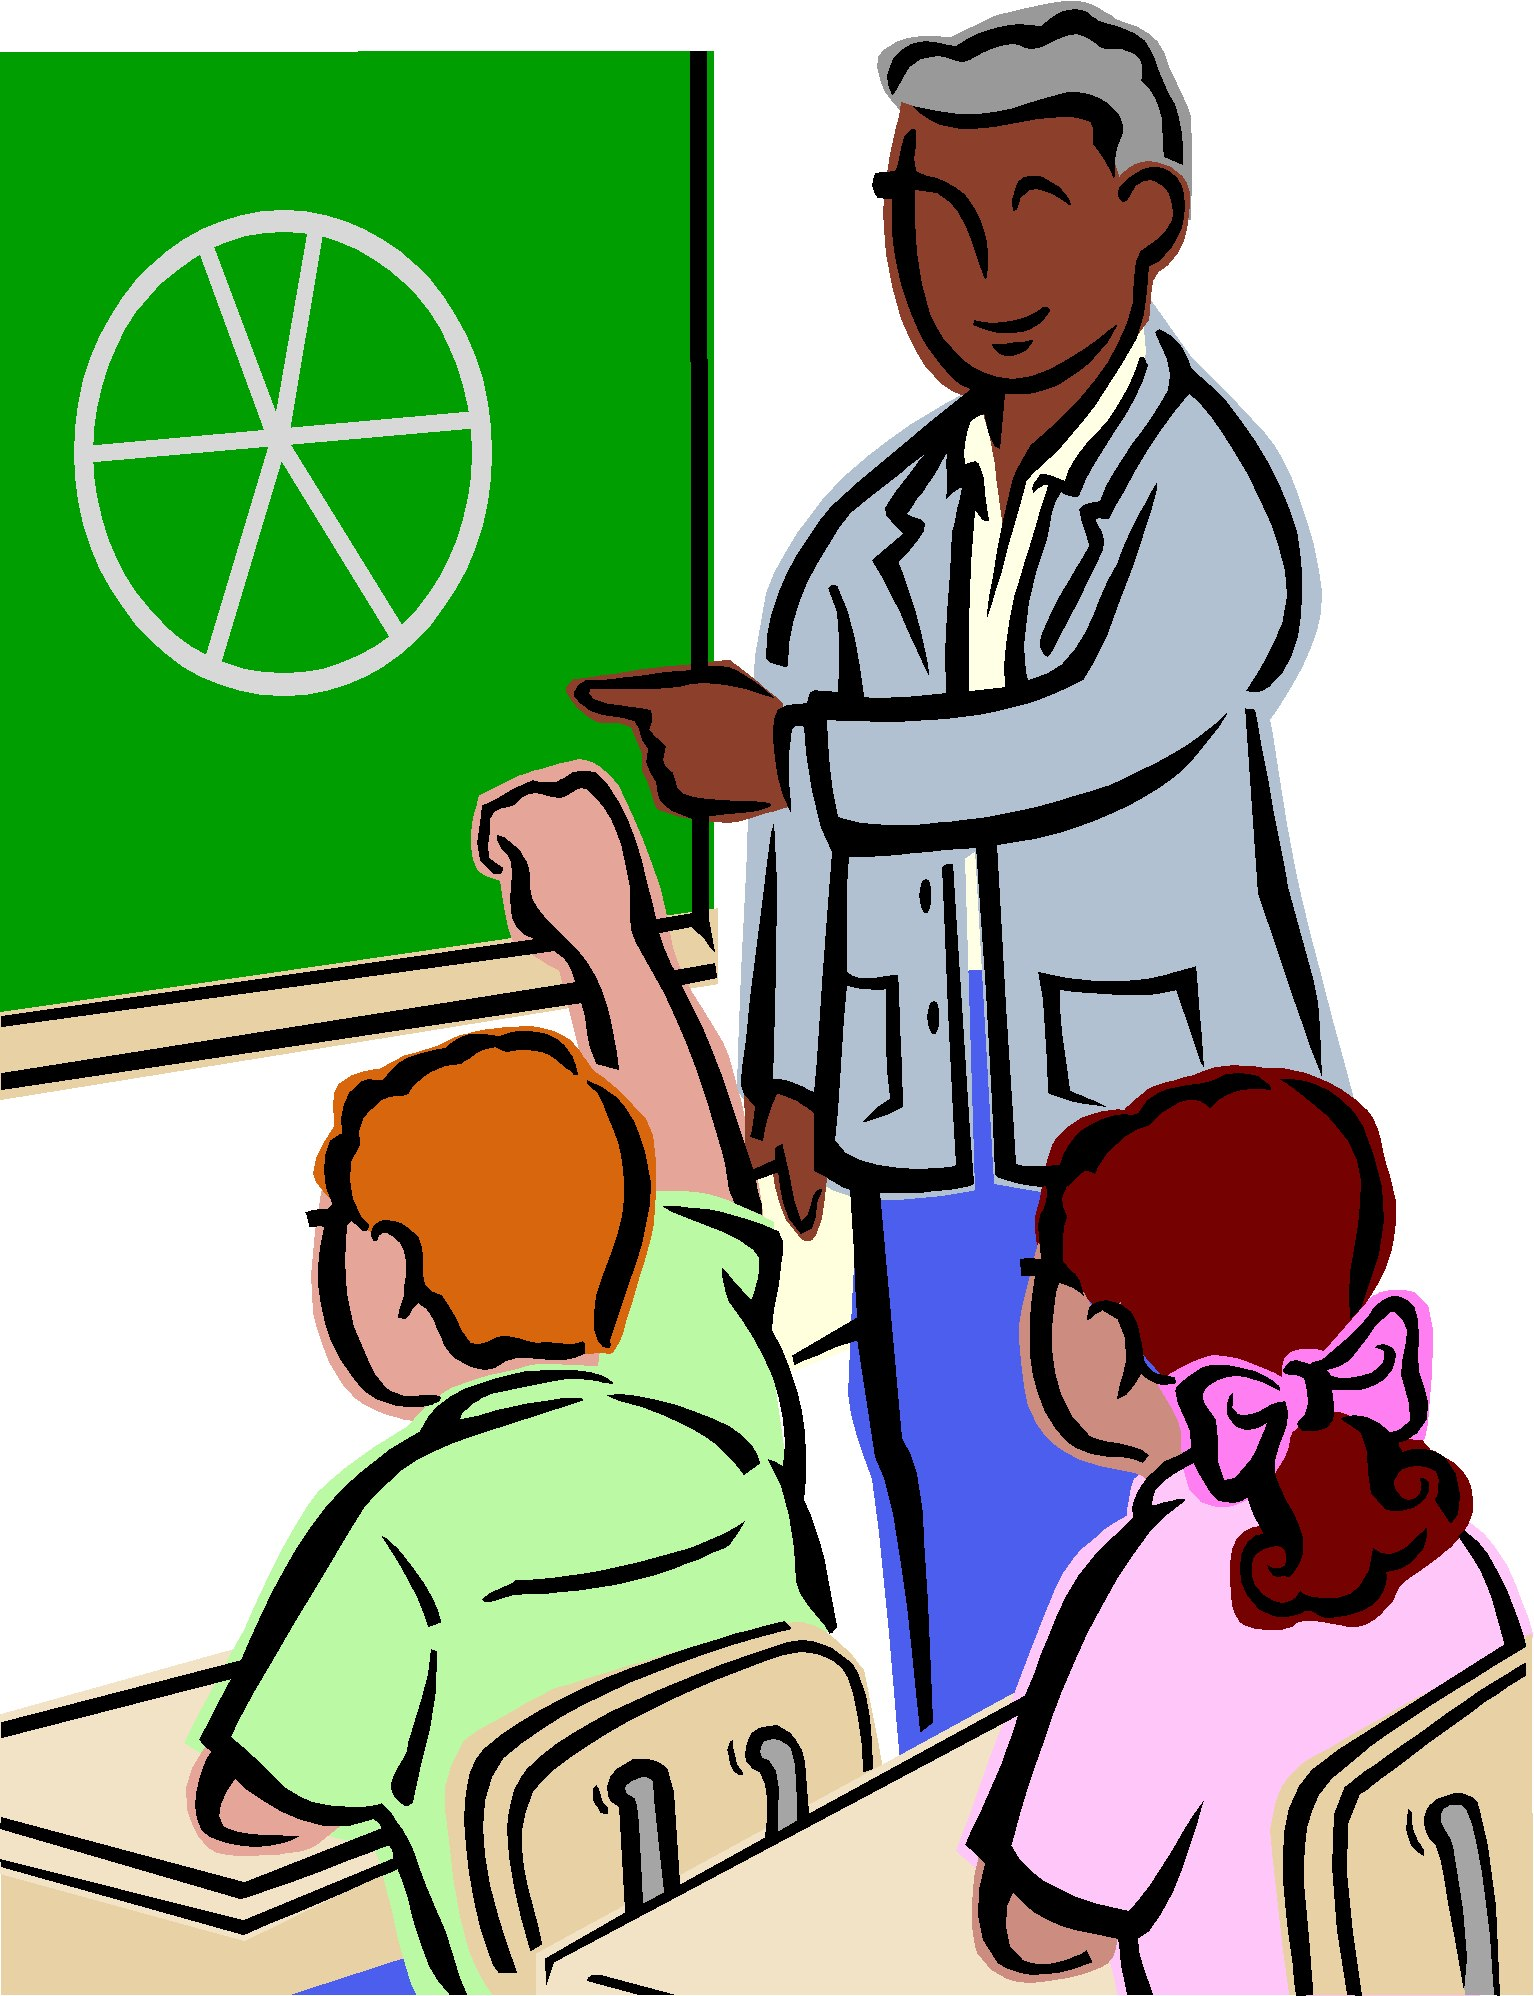 Clip Art For Teachers Books | Clipart library - Free Clipart Images